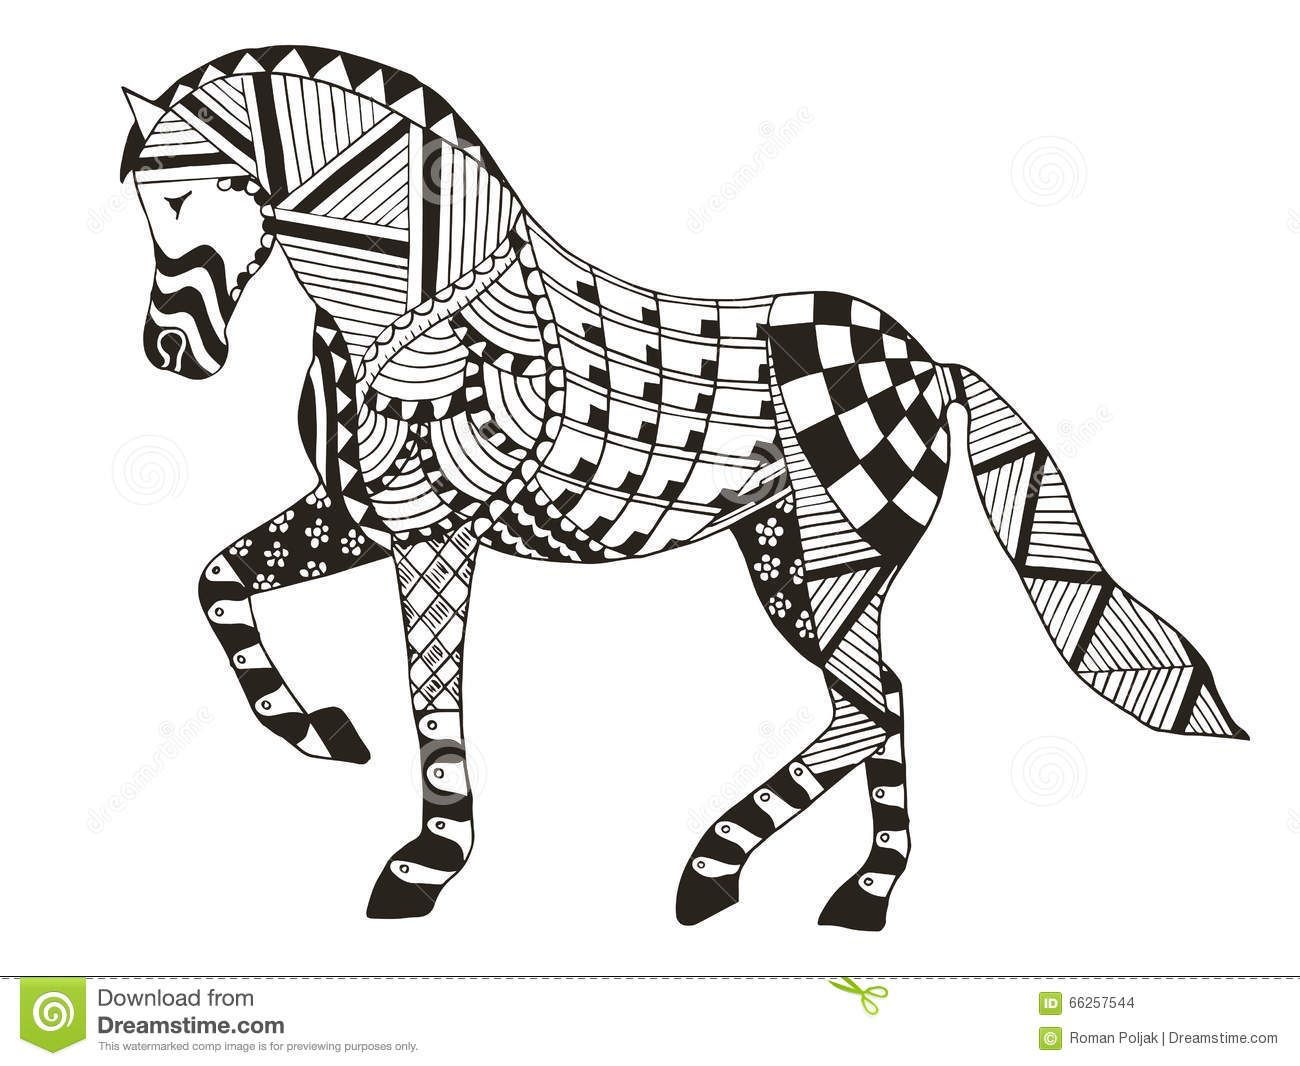 Related image colouring pages pinterest stenciling and searching